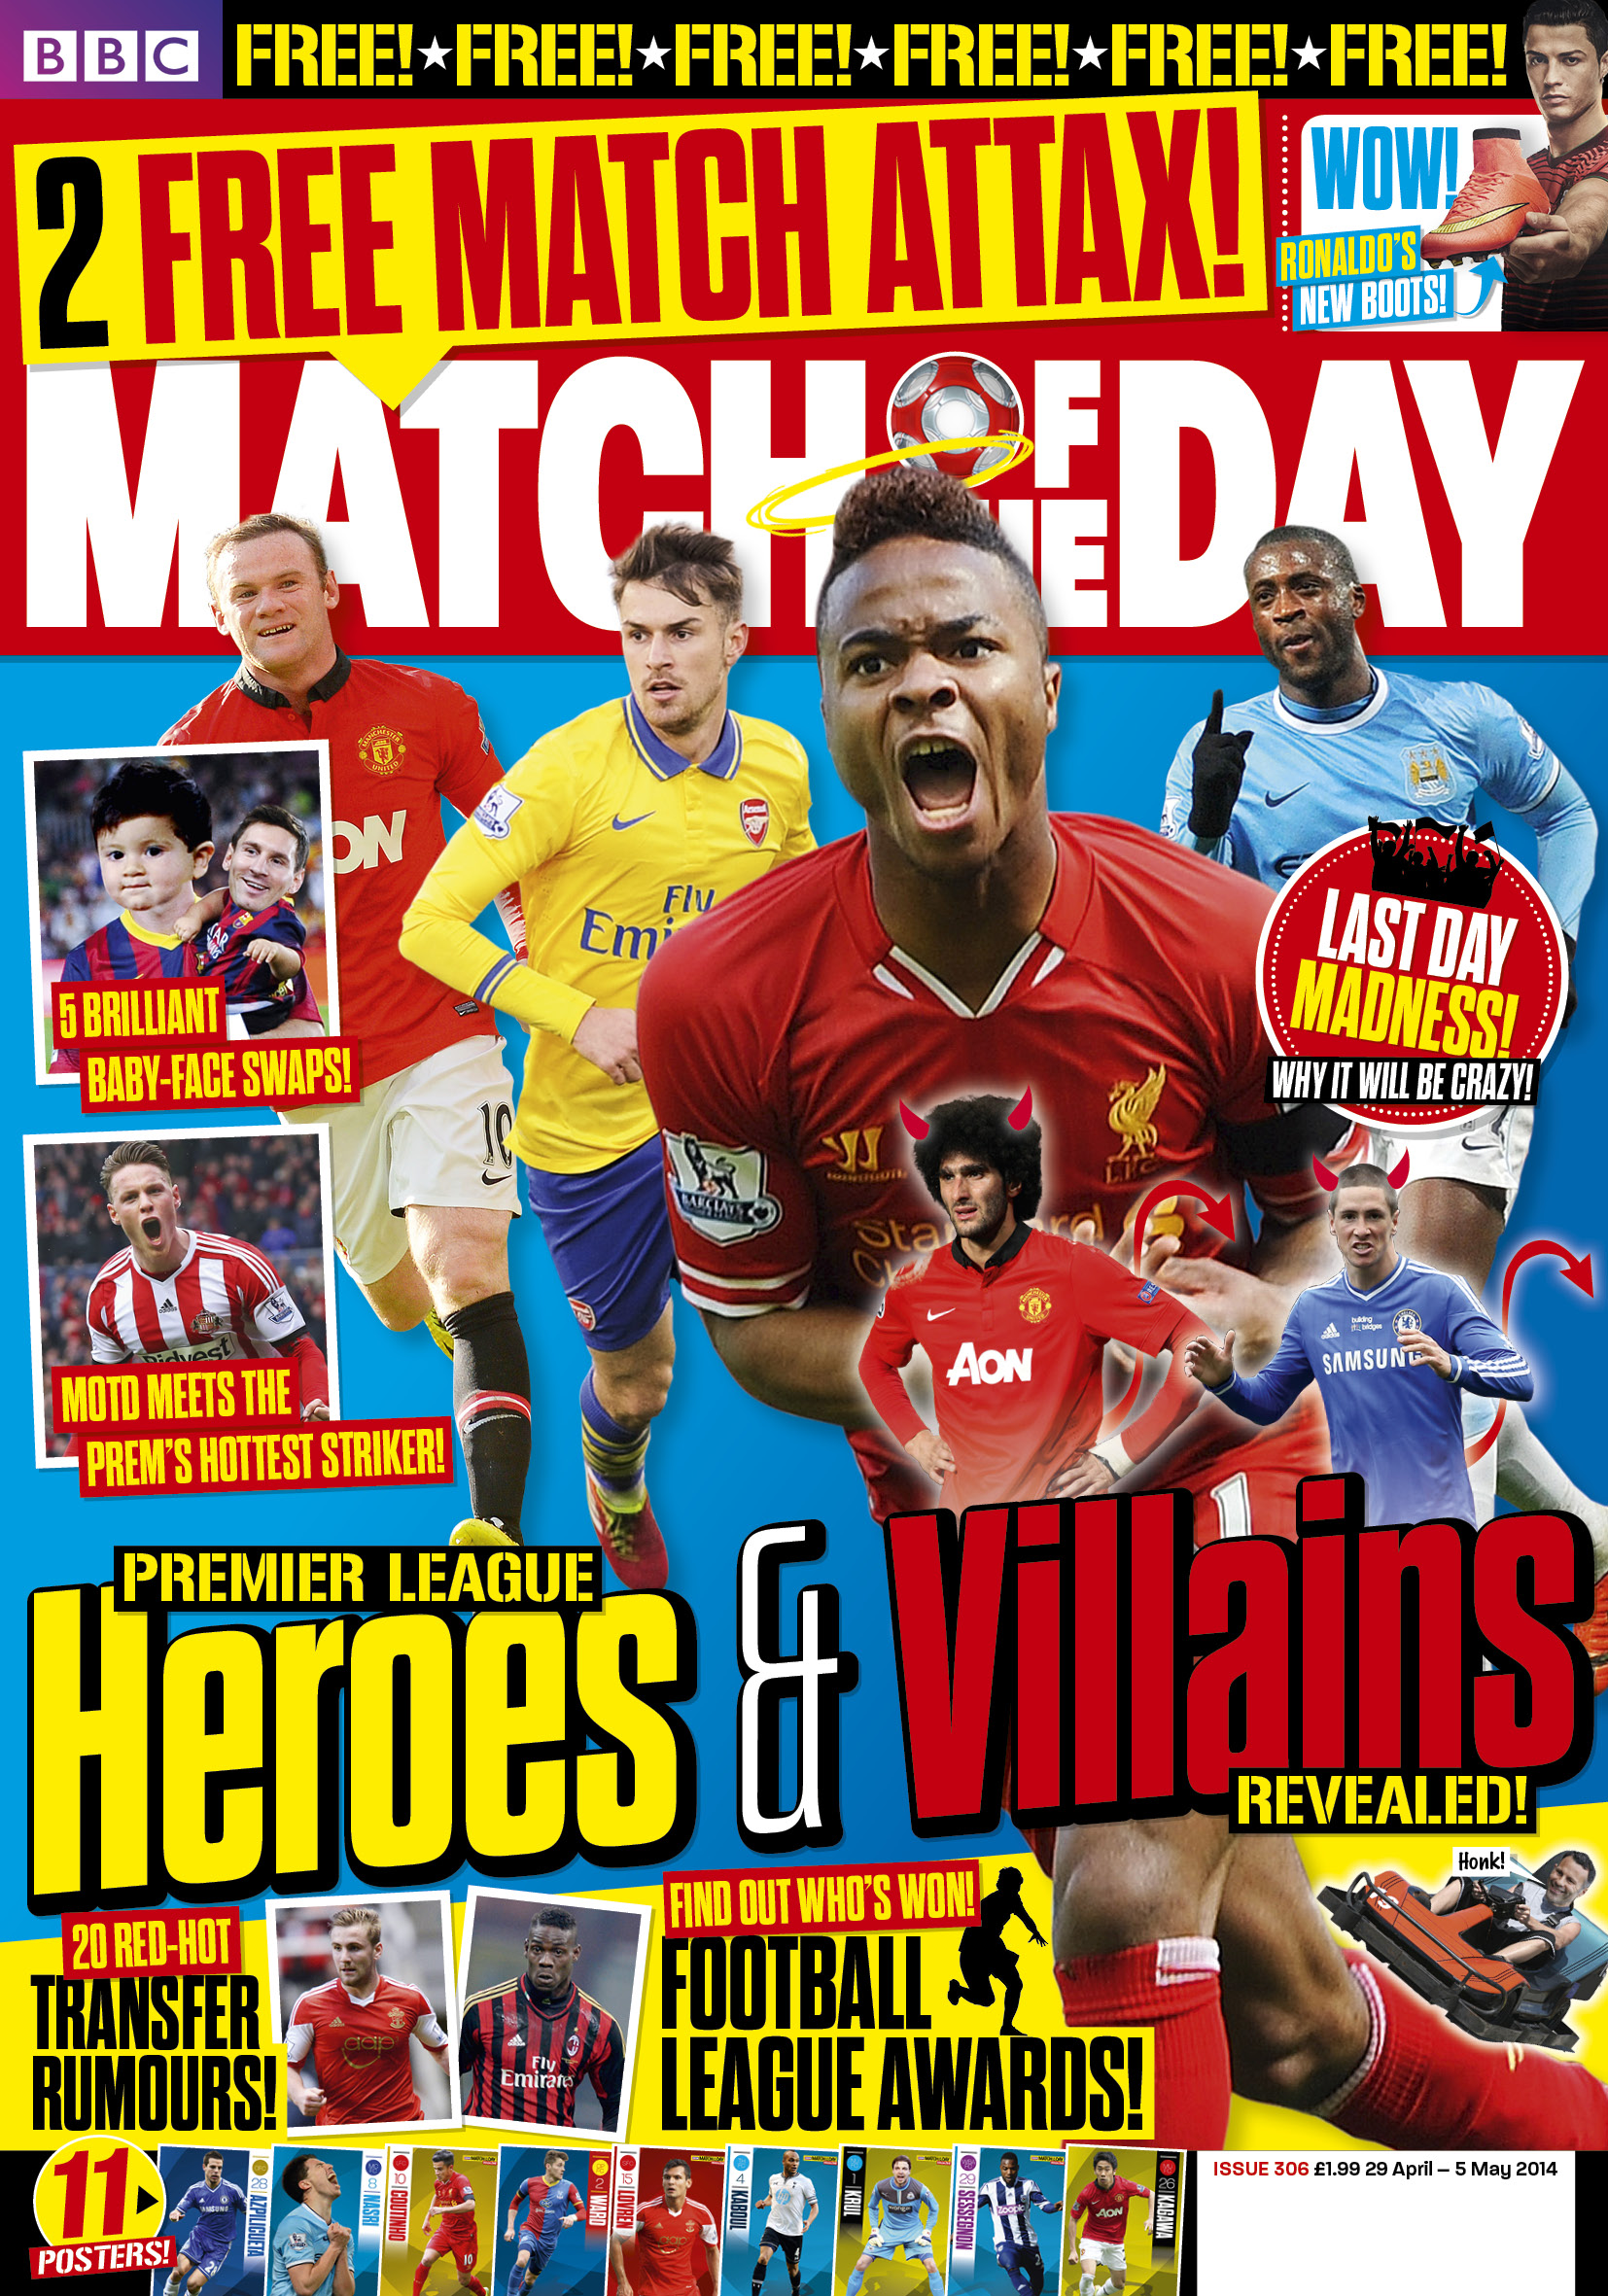 Germans win Match of the Day magazine in £270m deal